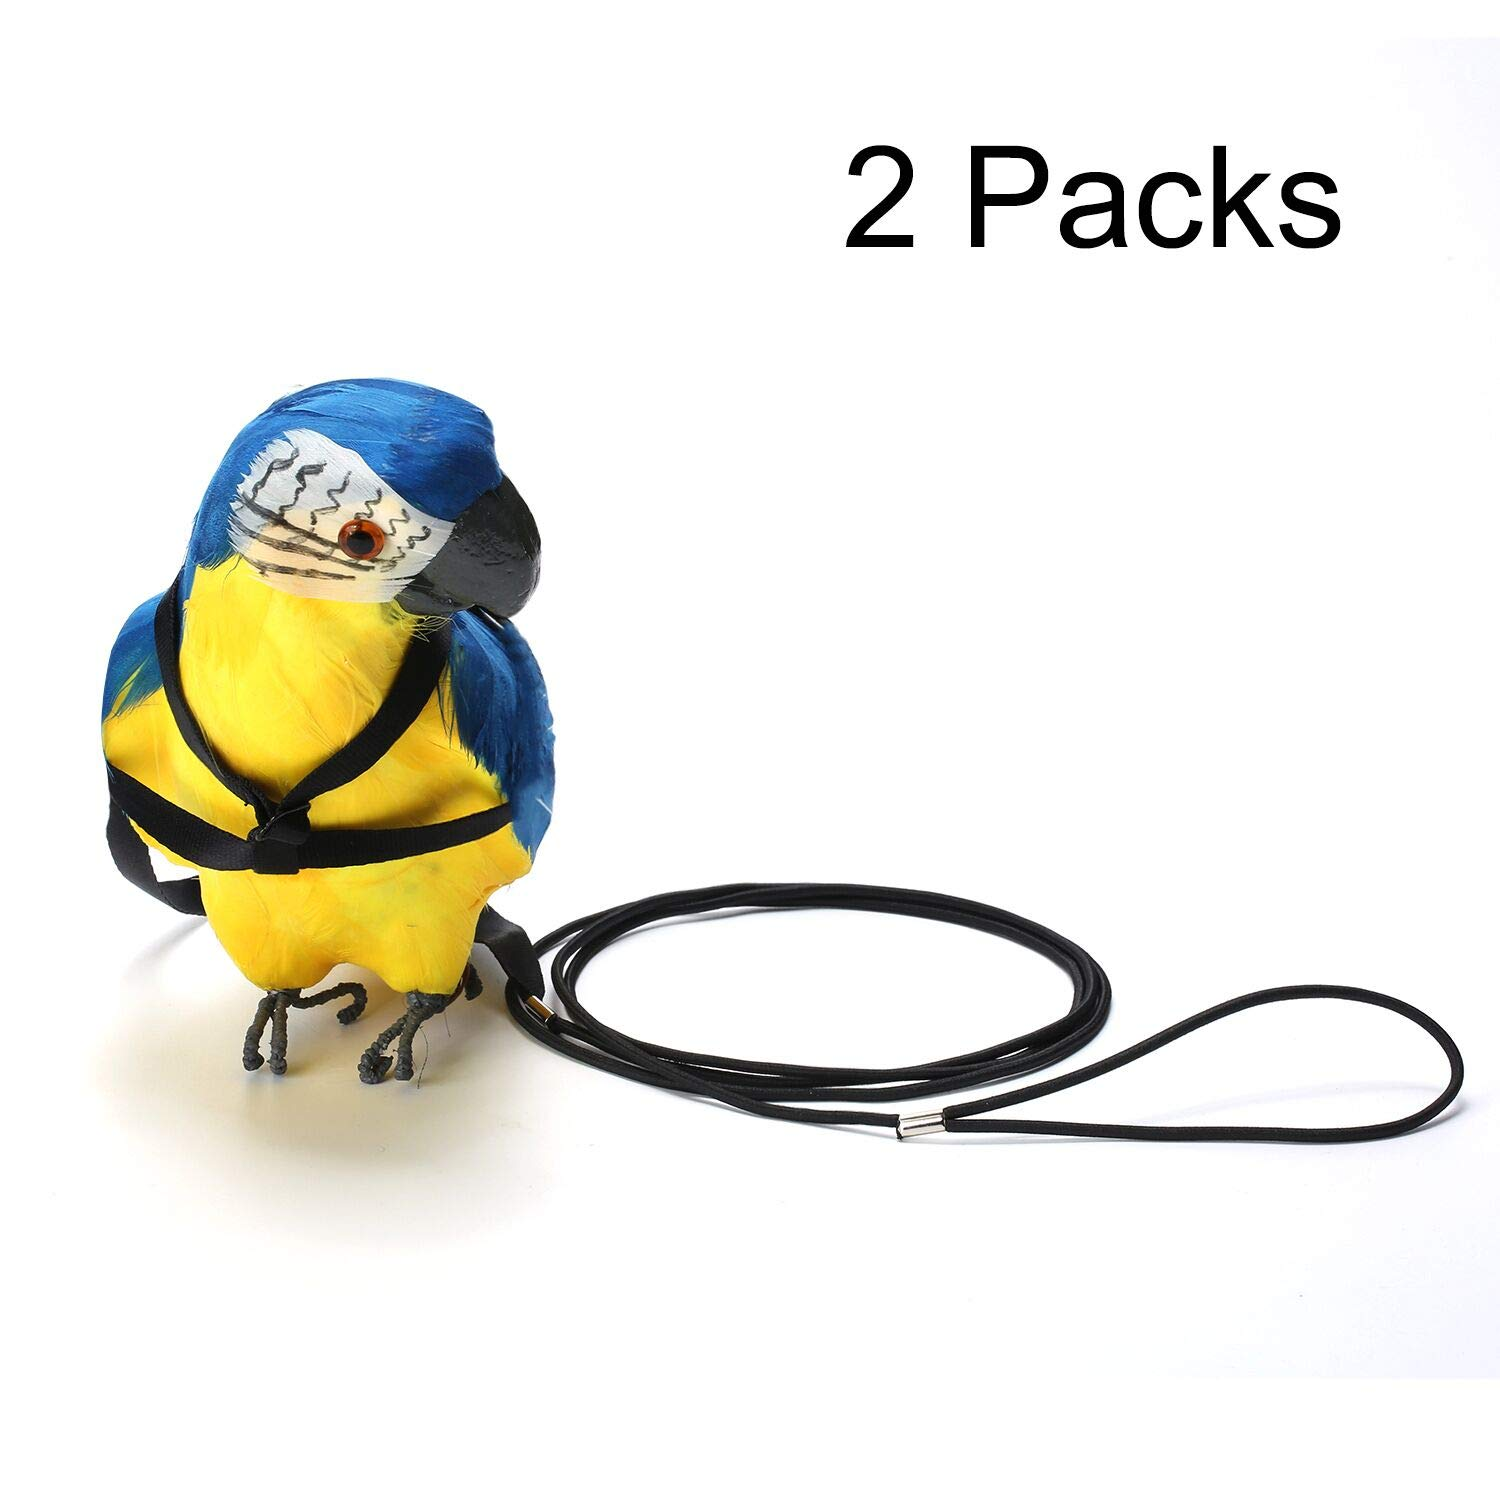 Adjustable Parrot Bird Harness Leash - VIPpet Anti-Bite Training Rope Outdoor Flying Harness And Leash